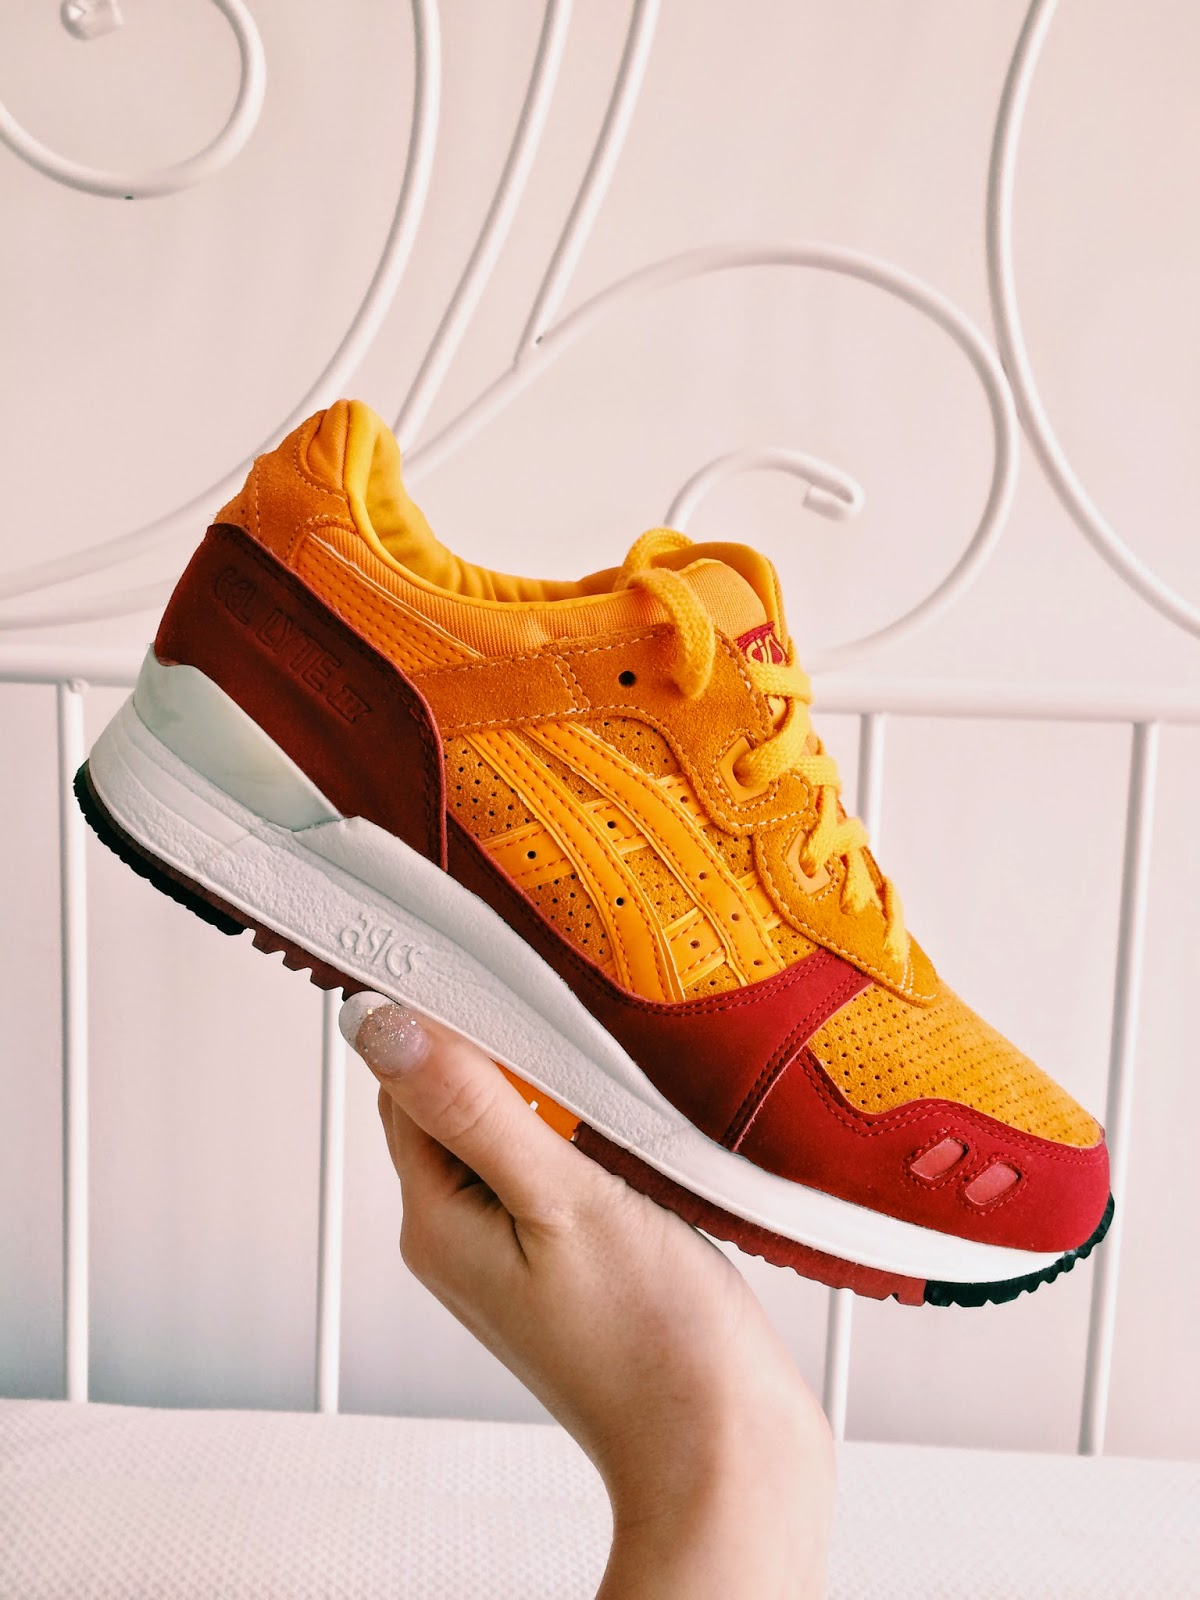 asics gel lyte ii wildcats hanon uk collaboration rare girls kicks girls trainers trainers for women